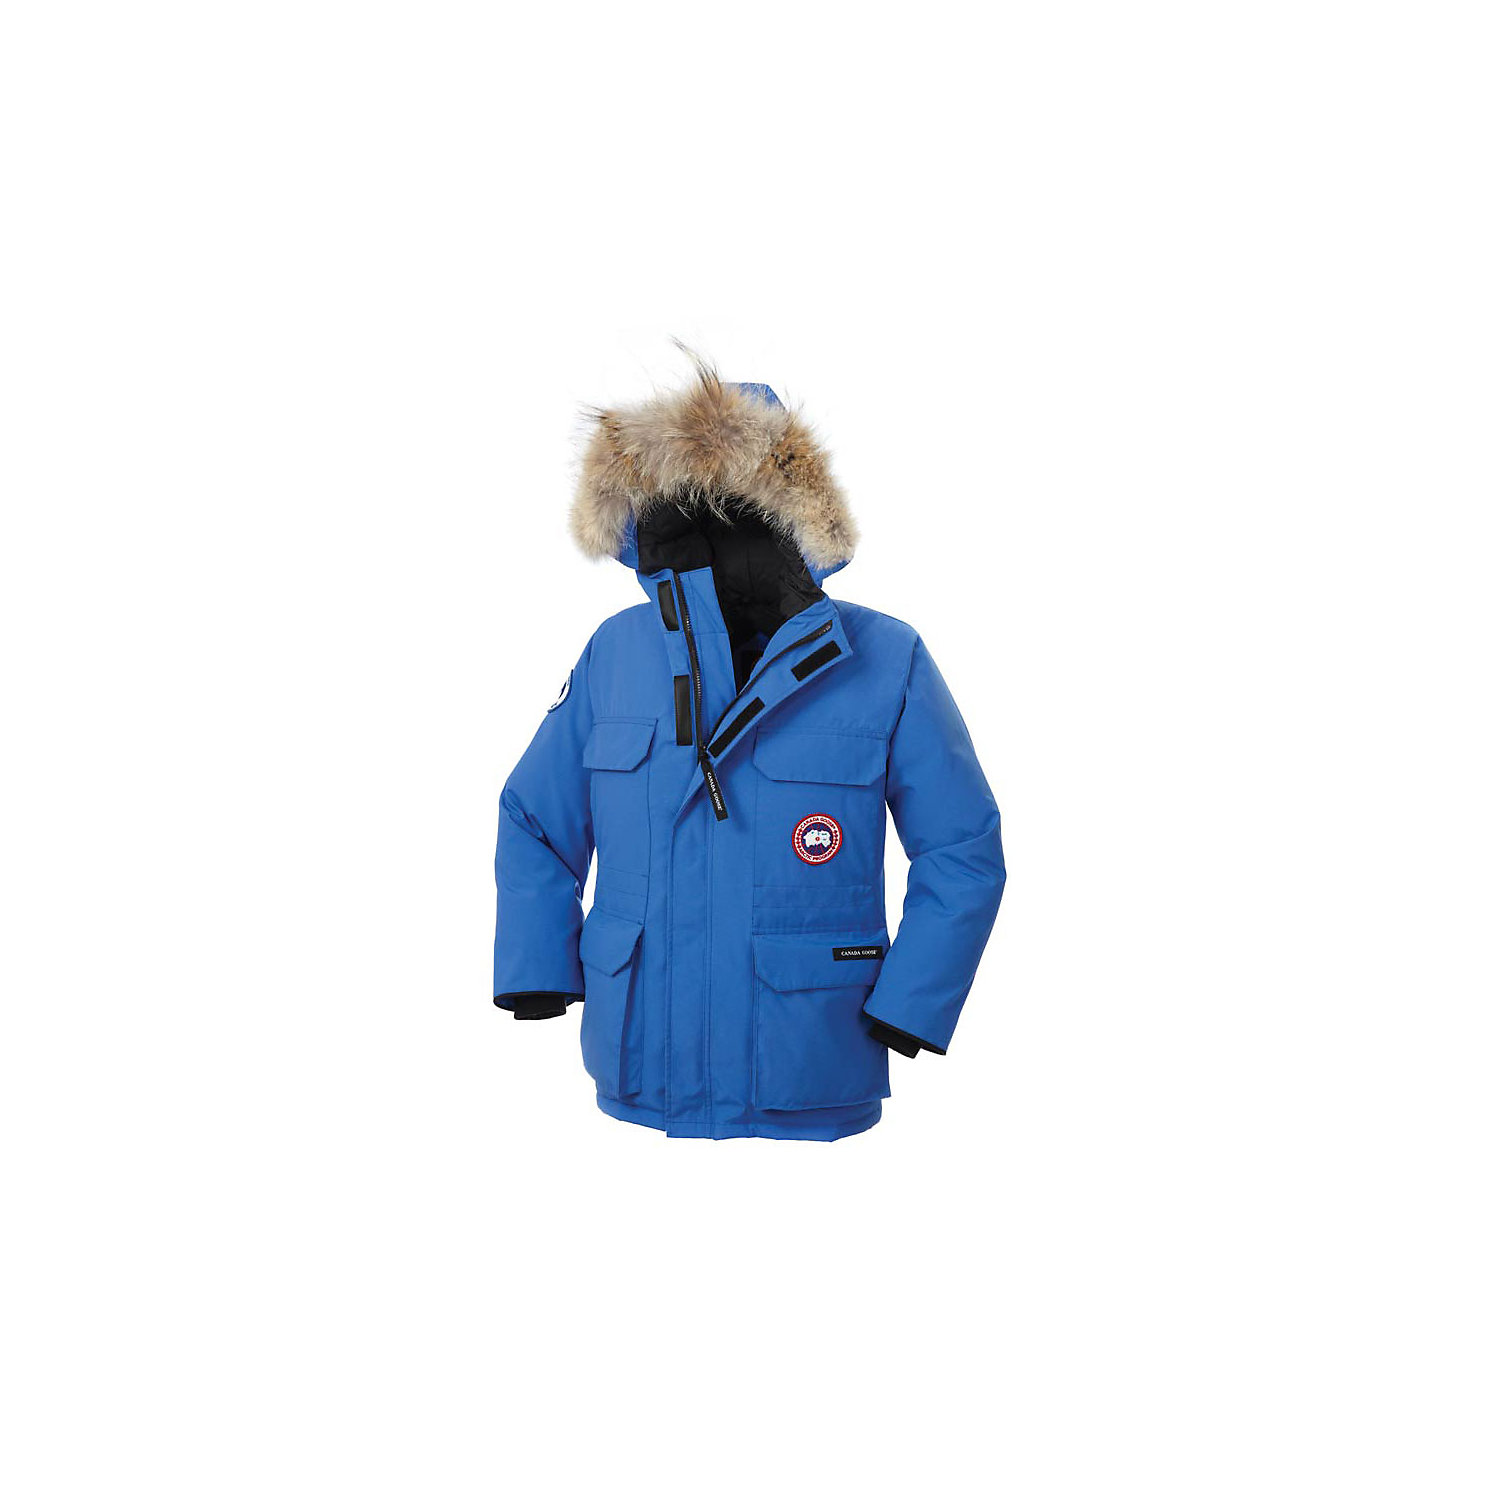 6ebb81025d0 Canada Goose Youth PBI Expedition Parka - Moosejaw